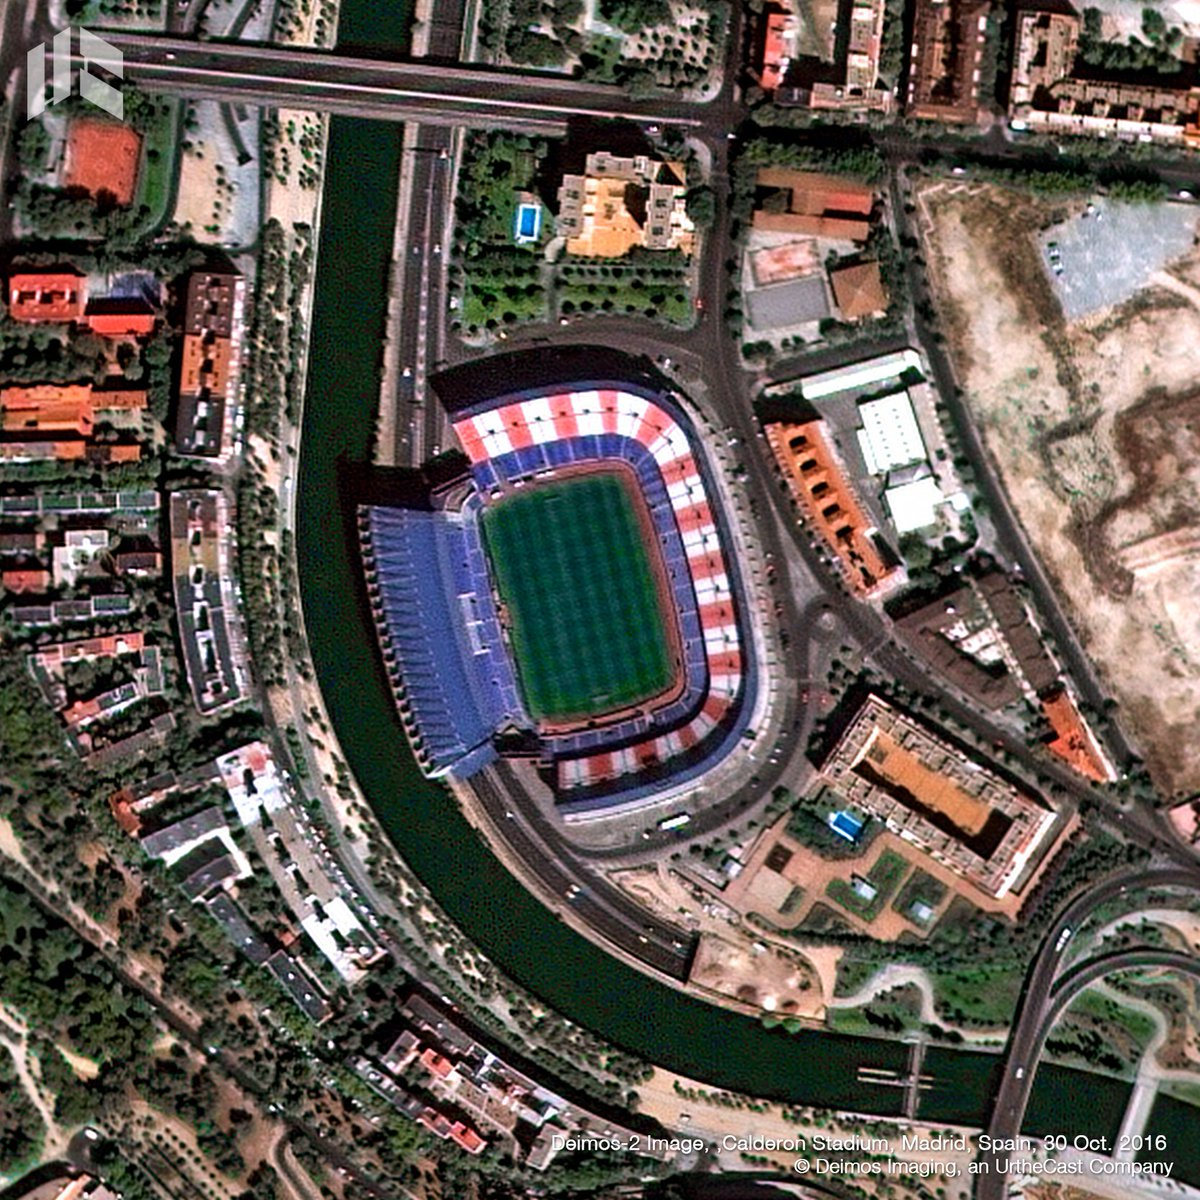 All set for @Atleti's final game at #Calderón today! This is how this historic stadium looks like from space! #DEIMOS2 #HastaSiempreCalderón<br>http://pic.twitter.com/8bg814z0Os